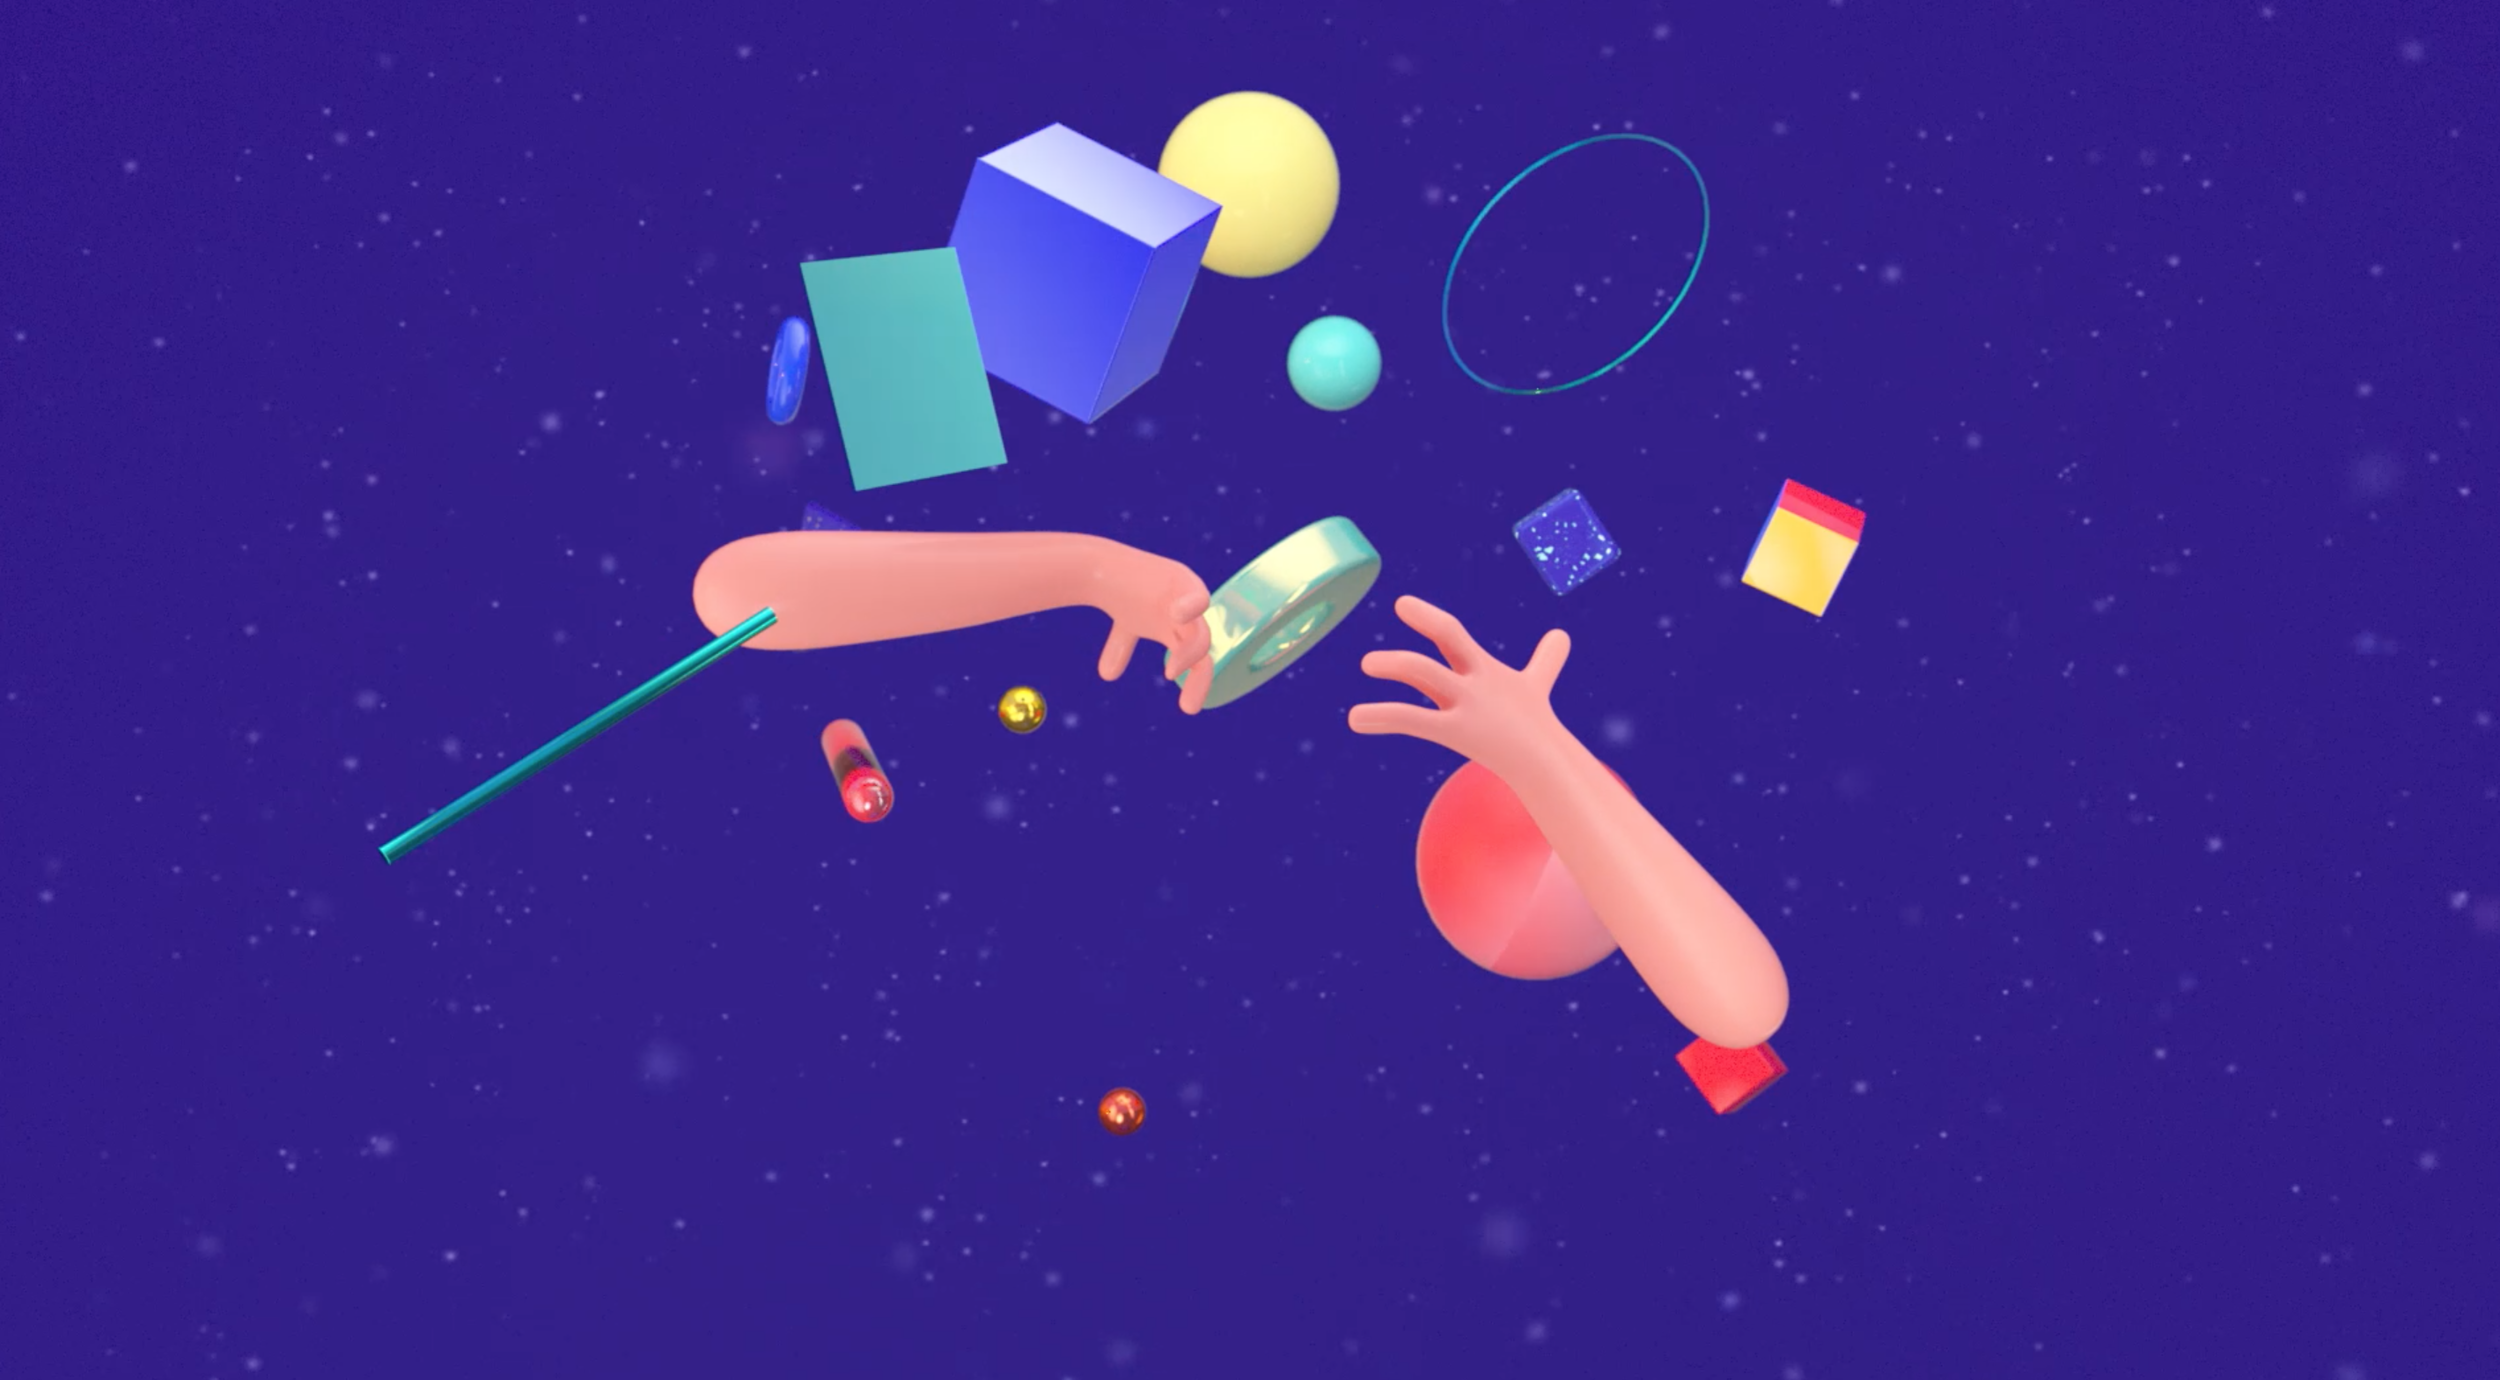 Meanwhile in Motion Designer's Crib - animation by Maxim and Johana Kroft